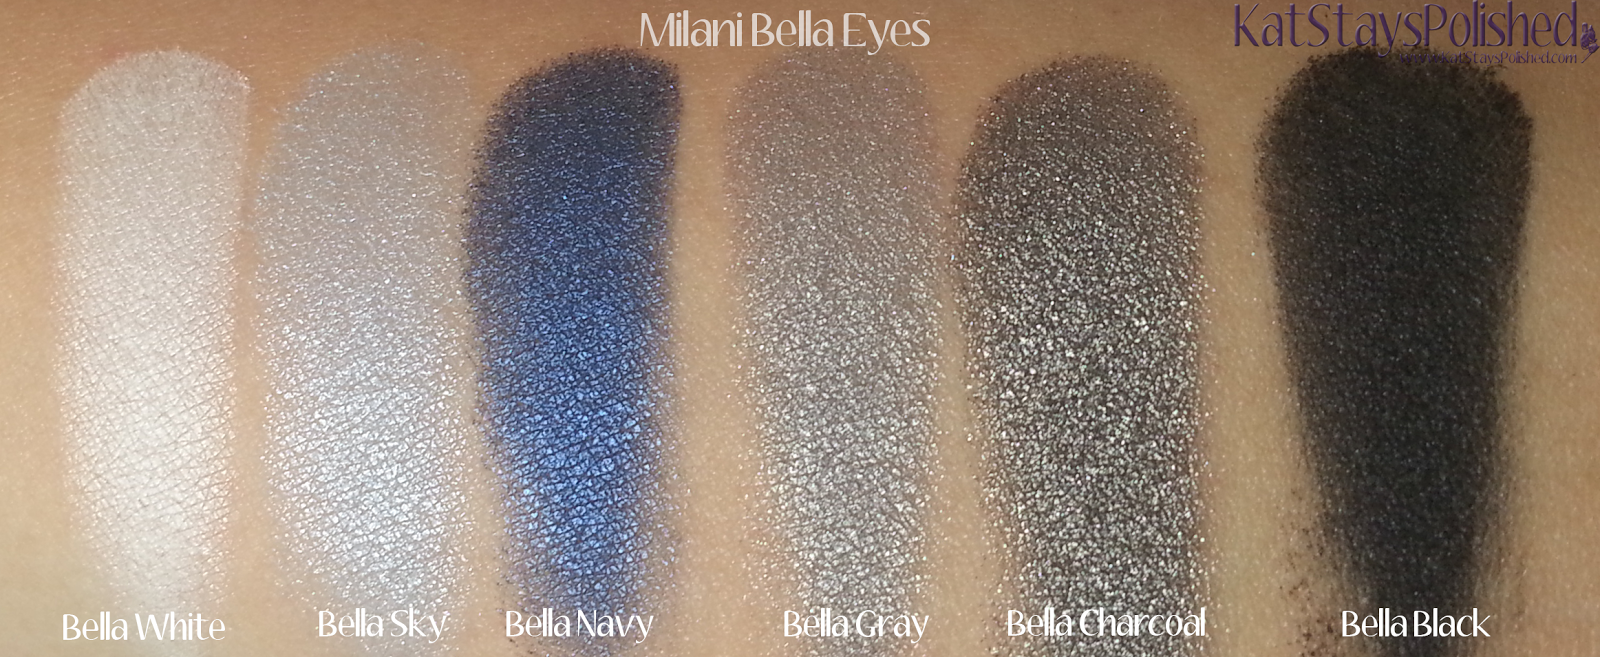 Milani Bella Eyes Gel Powder Eye Shadow - Swatches 07-12 | Kat Stays Polished